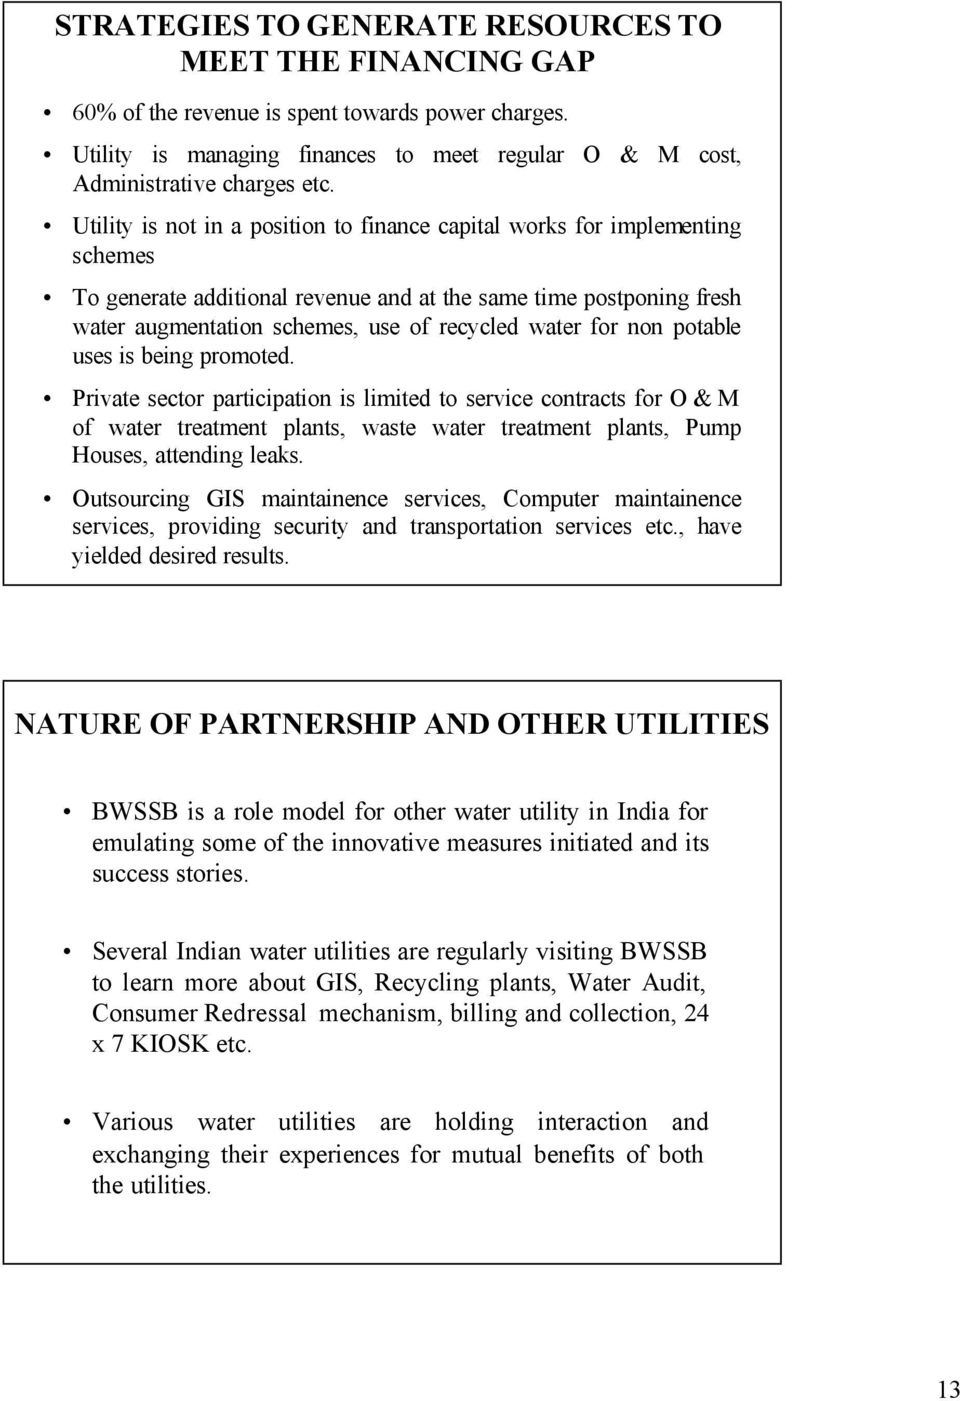 for non potable uses is being promoted. Private sector participation is limited to service contracts for O & M of water treatment plants, waste water treatment plants, Pump Houses, attending leaks.